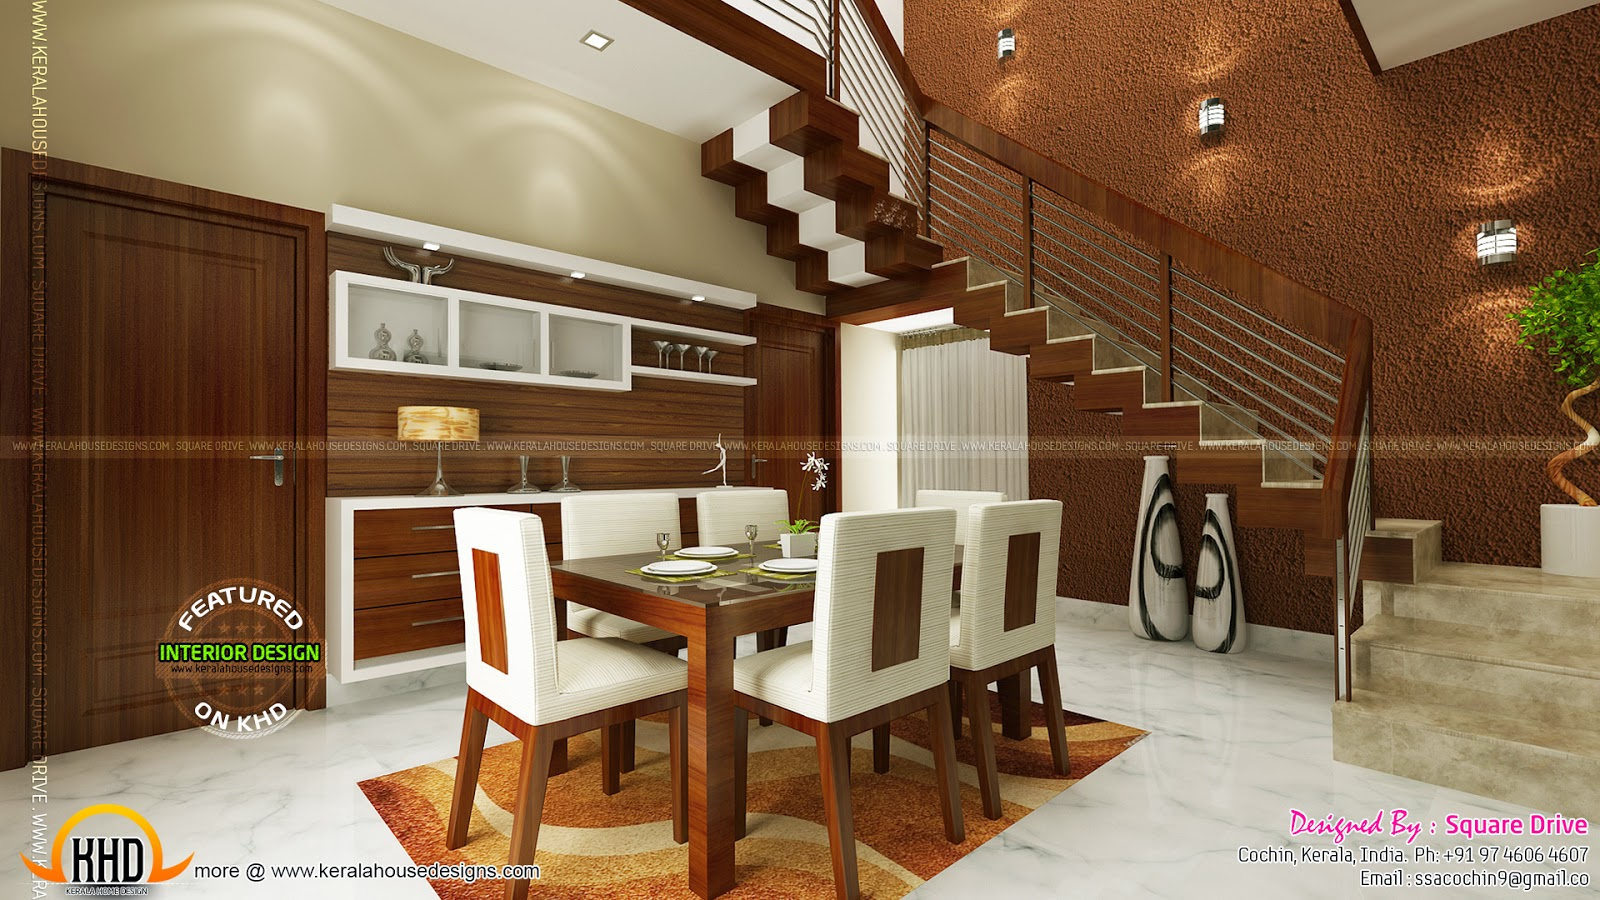 September 2014 kerala home design and floor plans - Interior design dining room ...